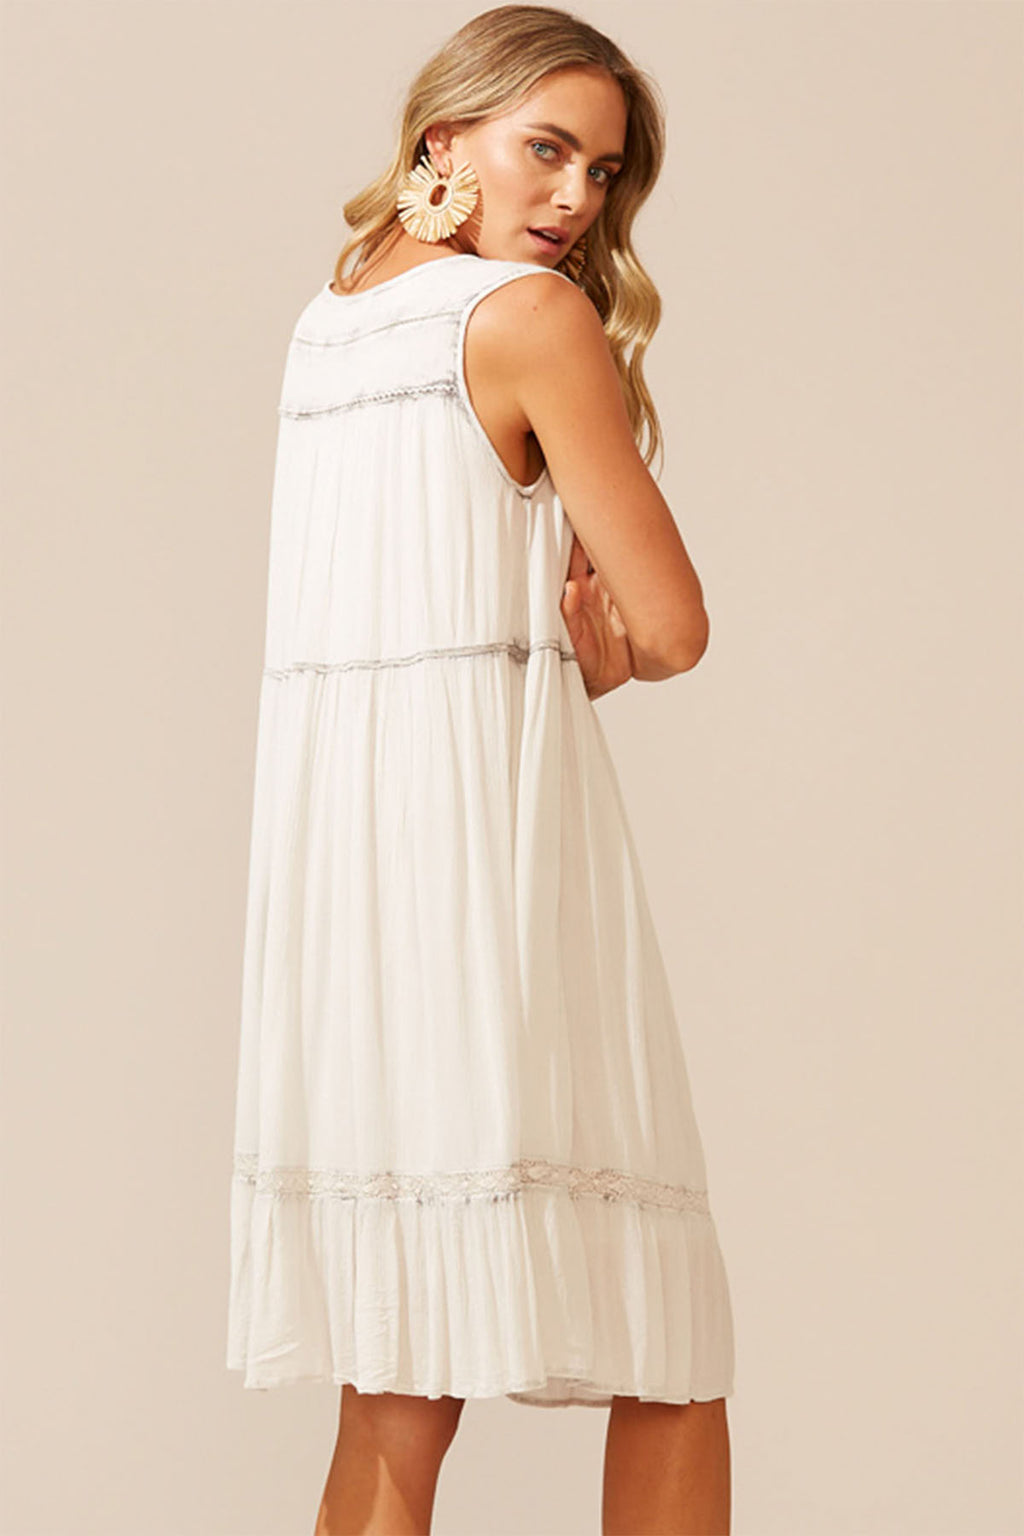 Cies Dress - Salt - The Bohemian Corner